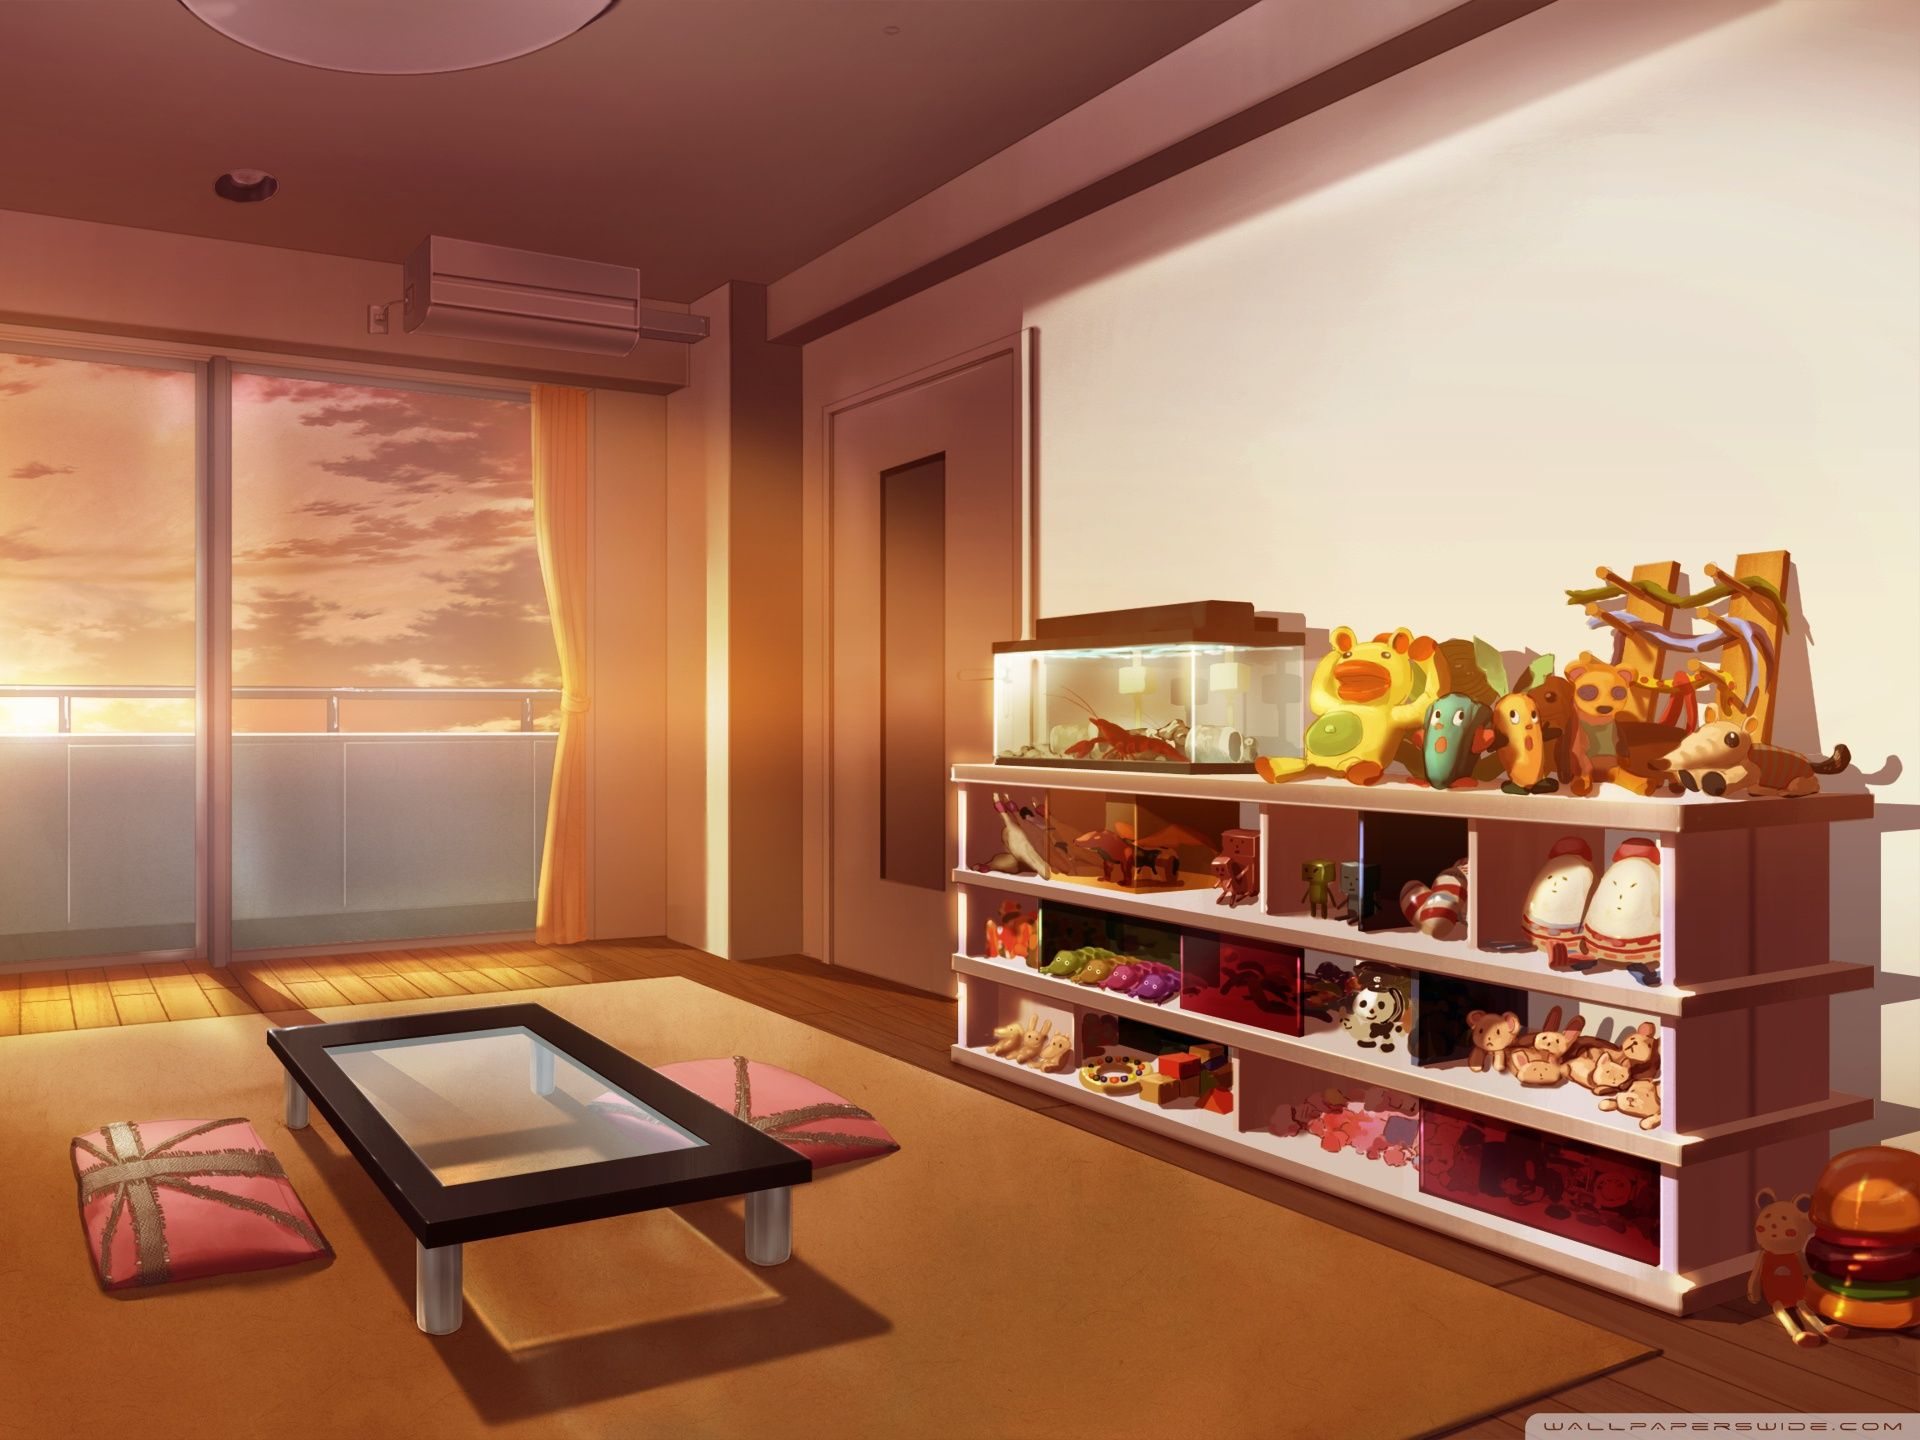 Room Background: Bedroom House Anime Scenery Background Wallpaper